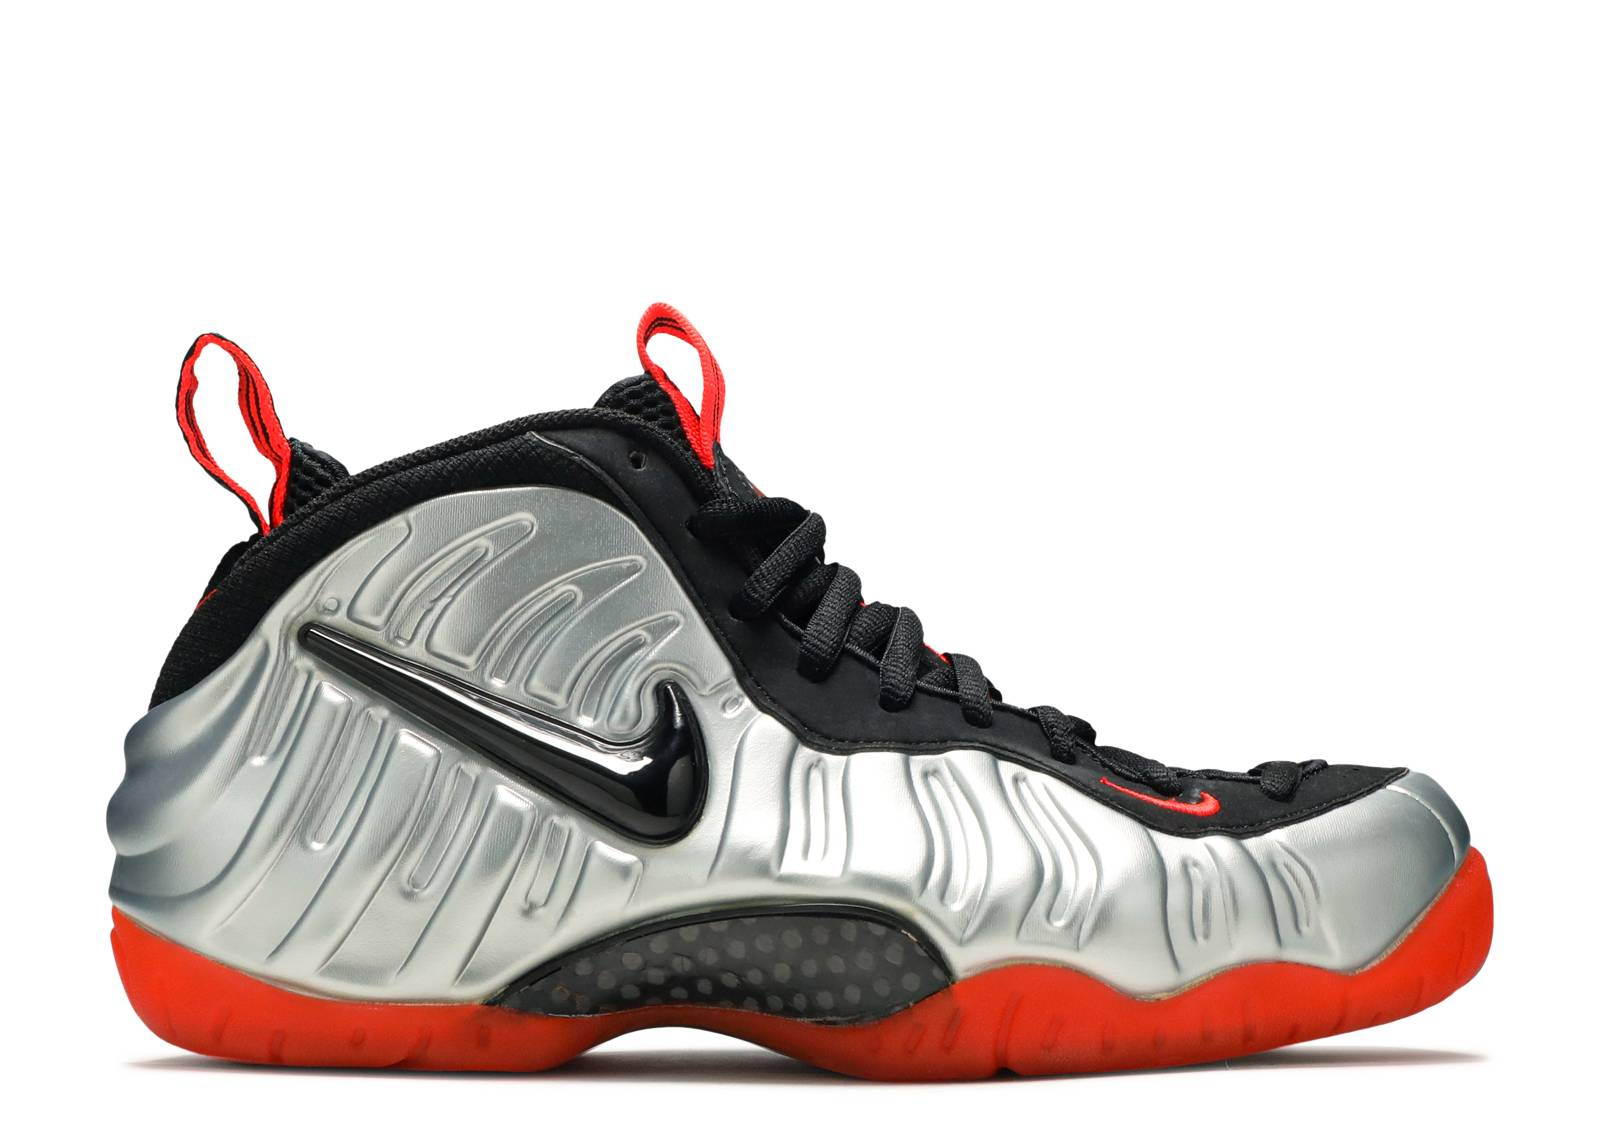 Air Foamposite One MT Memphis Tigers QS PE BV8161 400 ...